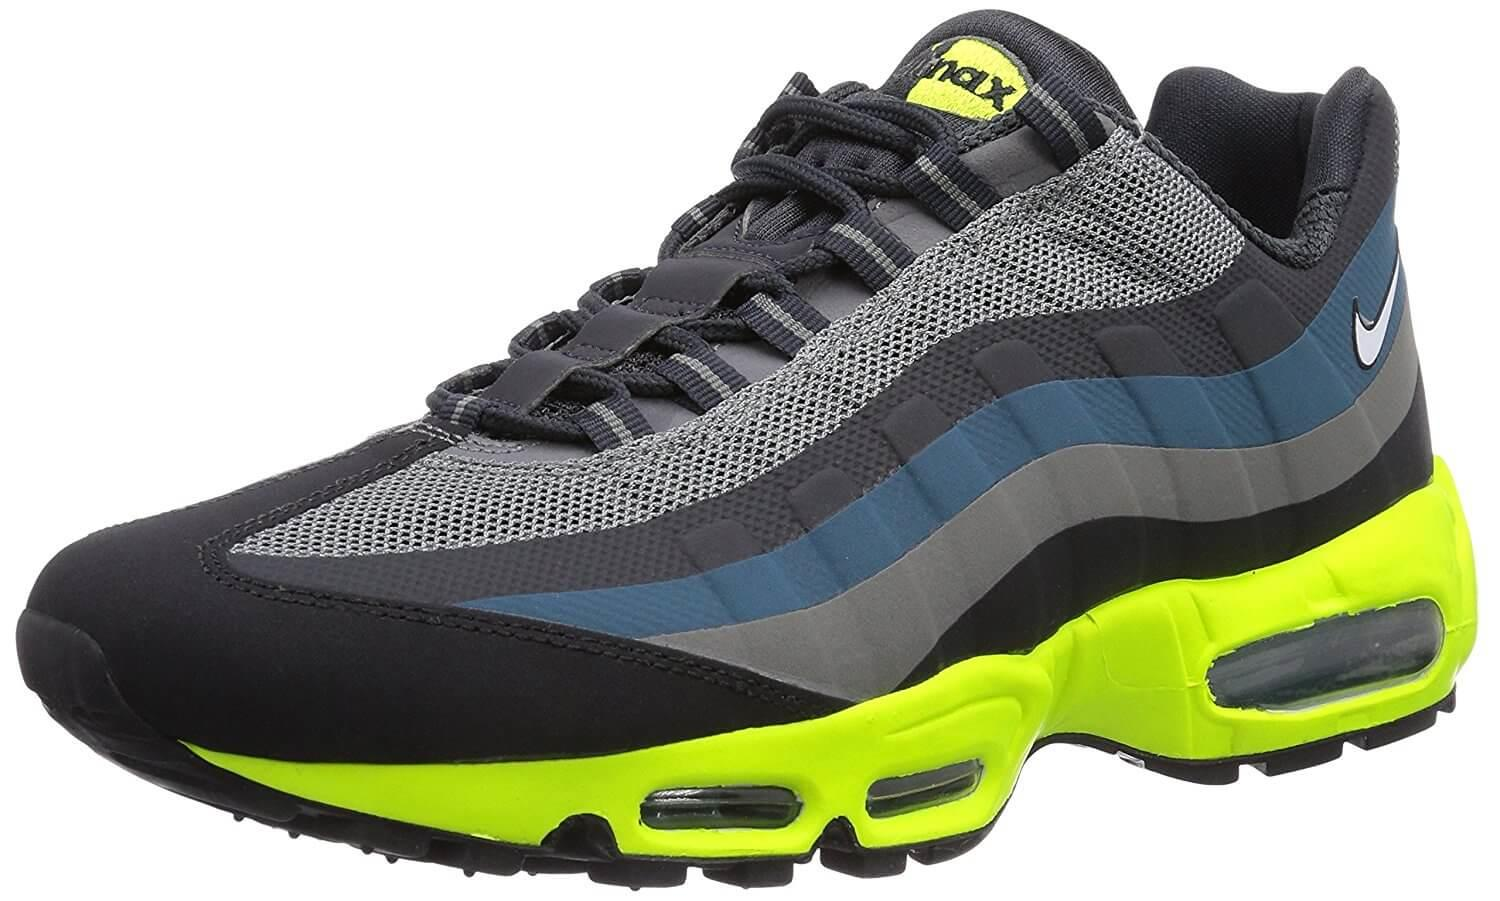 2570744db7e90 Nike Air Max 95 Reviewed - To Buy or Not in Apr 2019